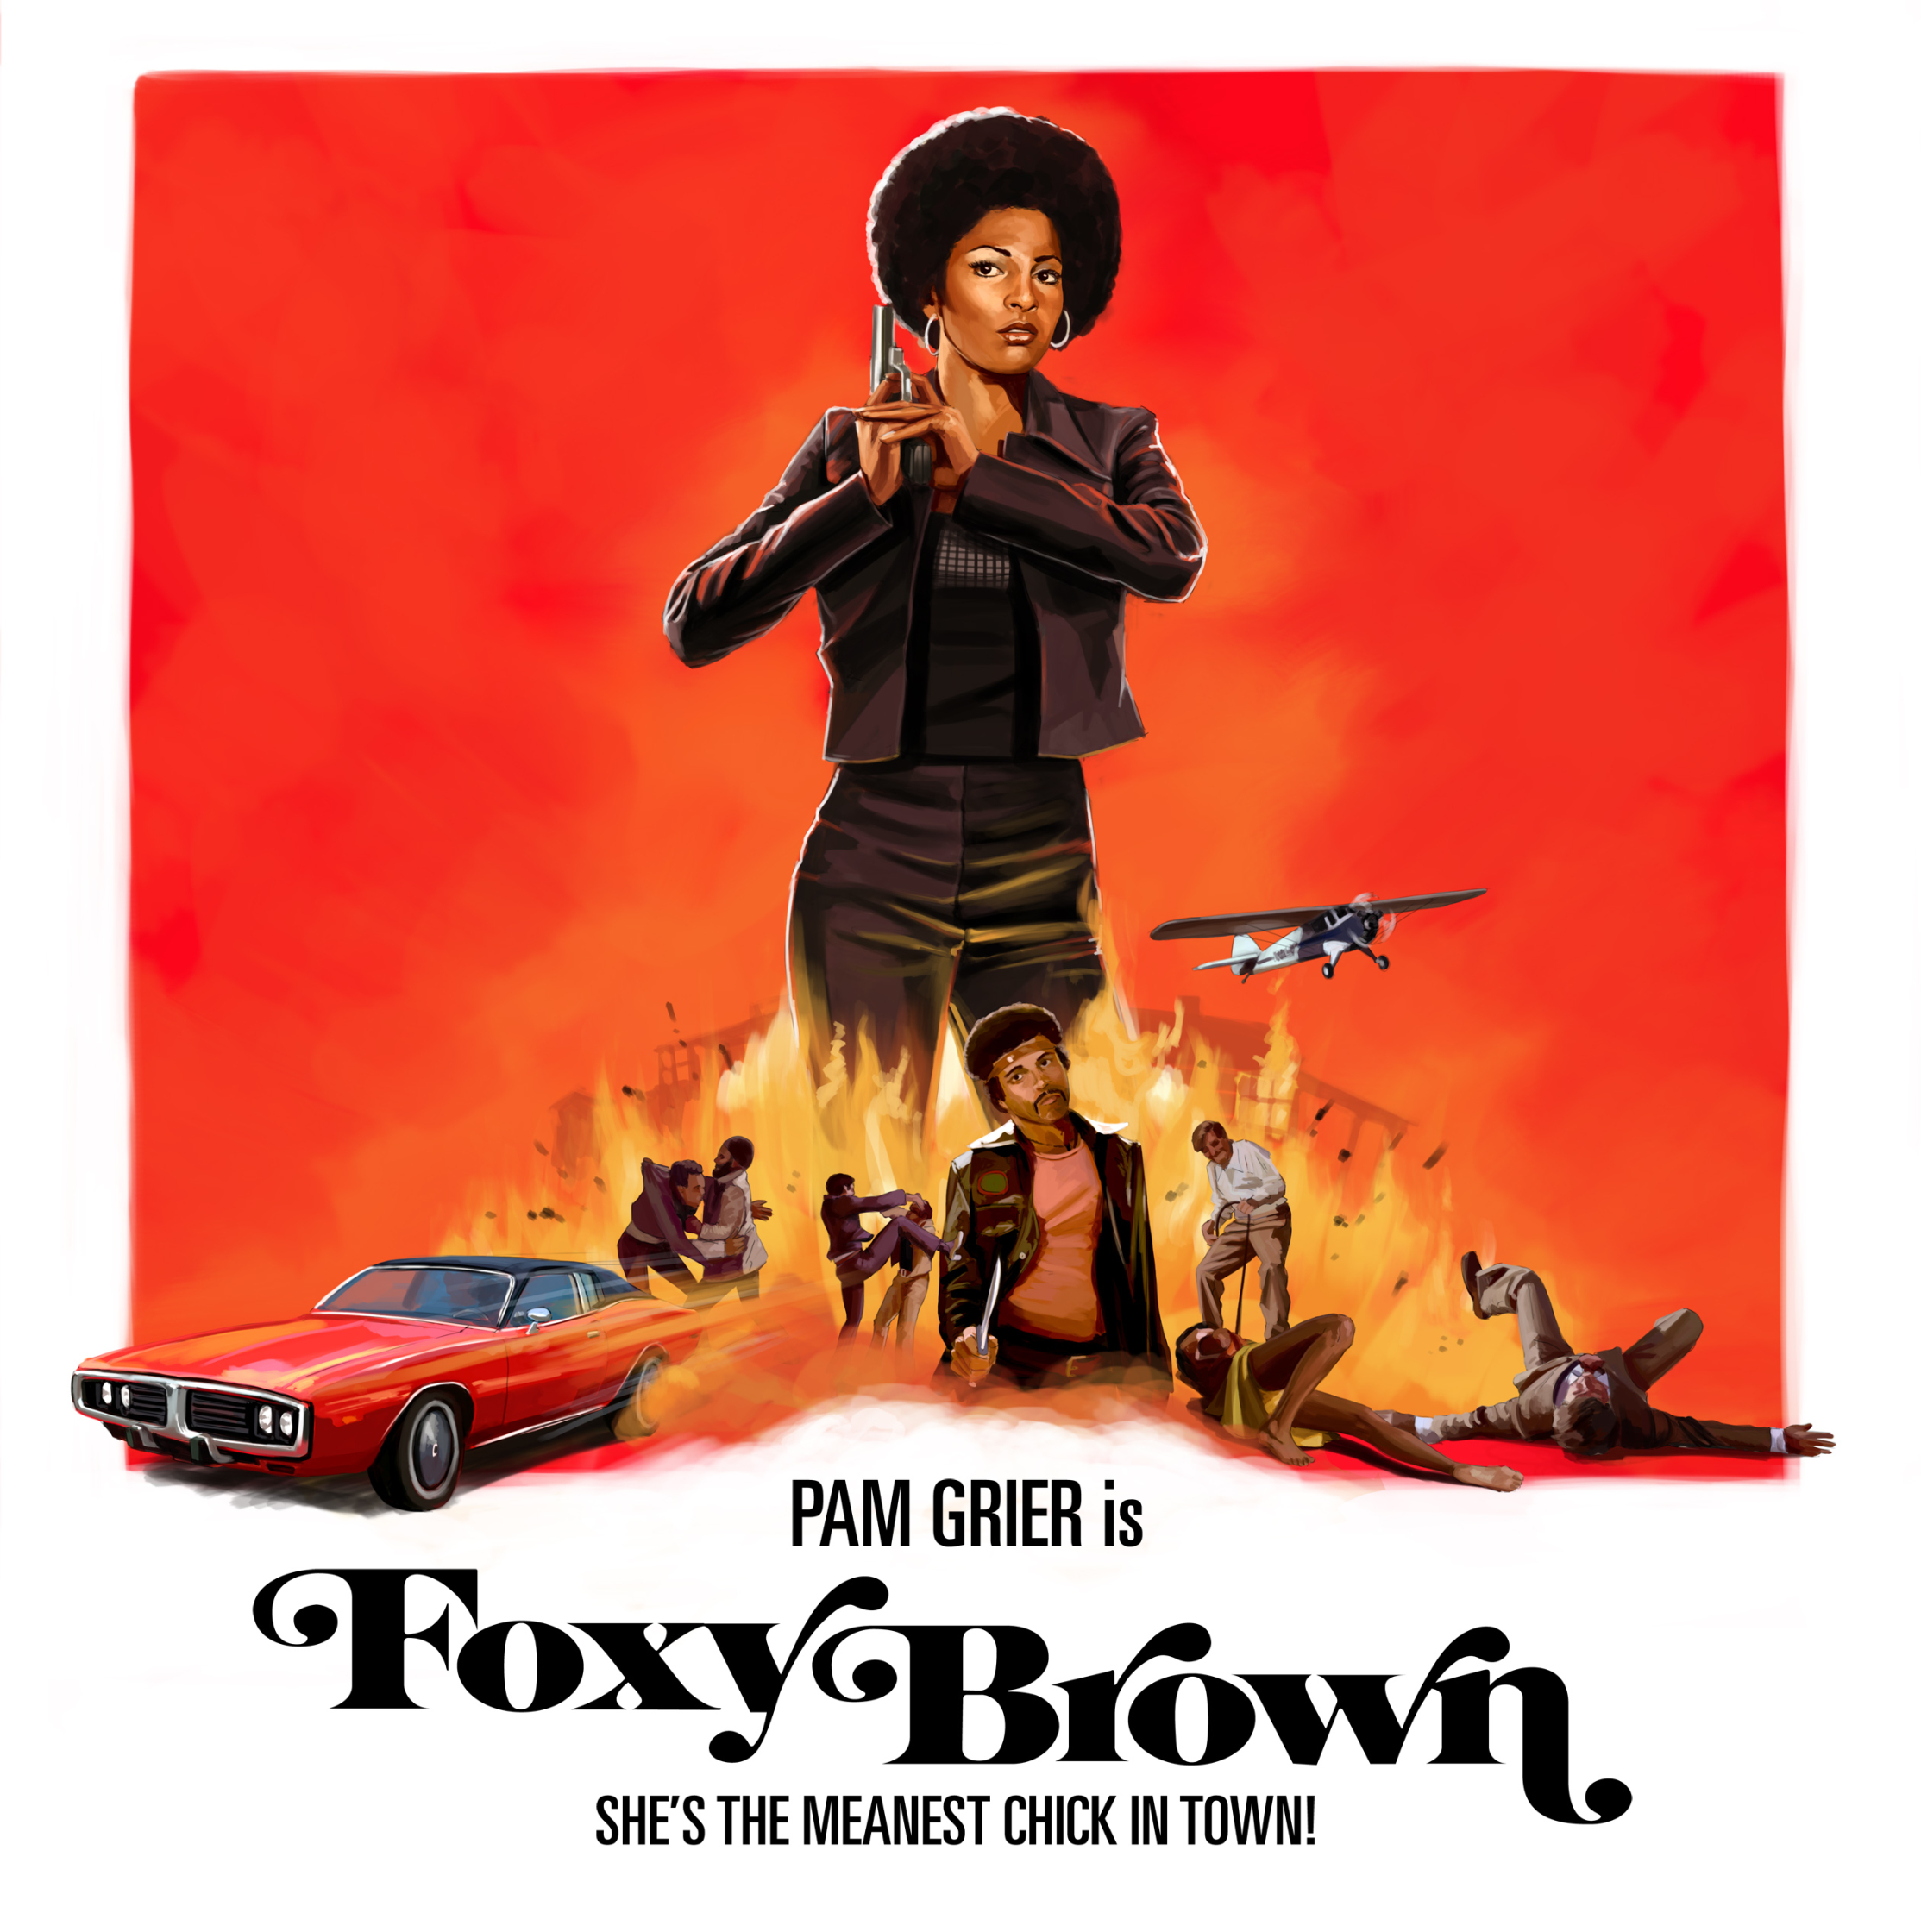 Arrow Films / Foxy Brown